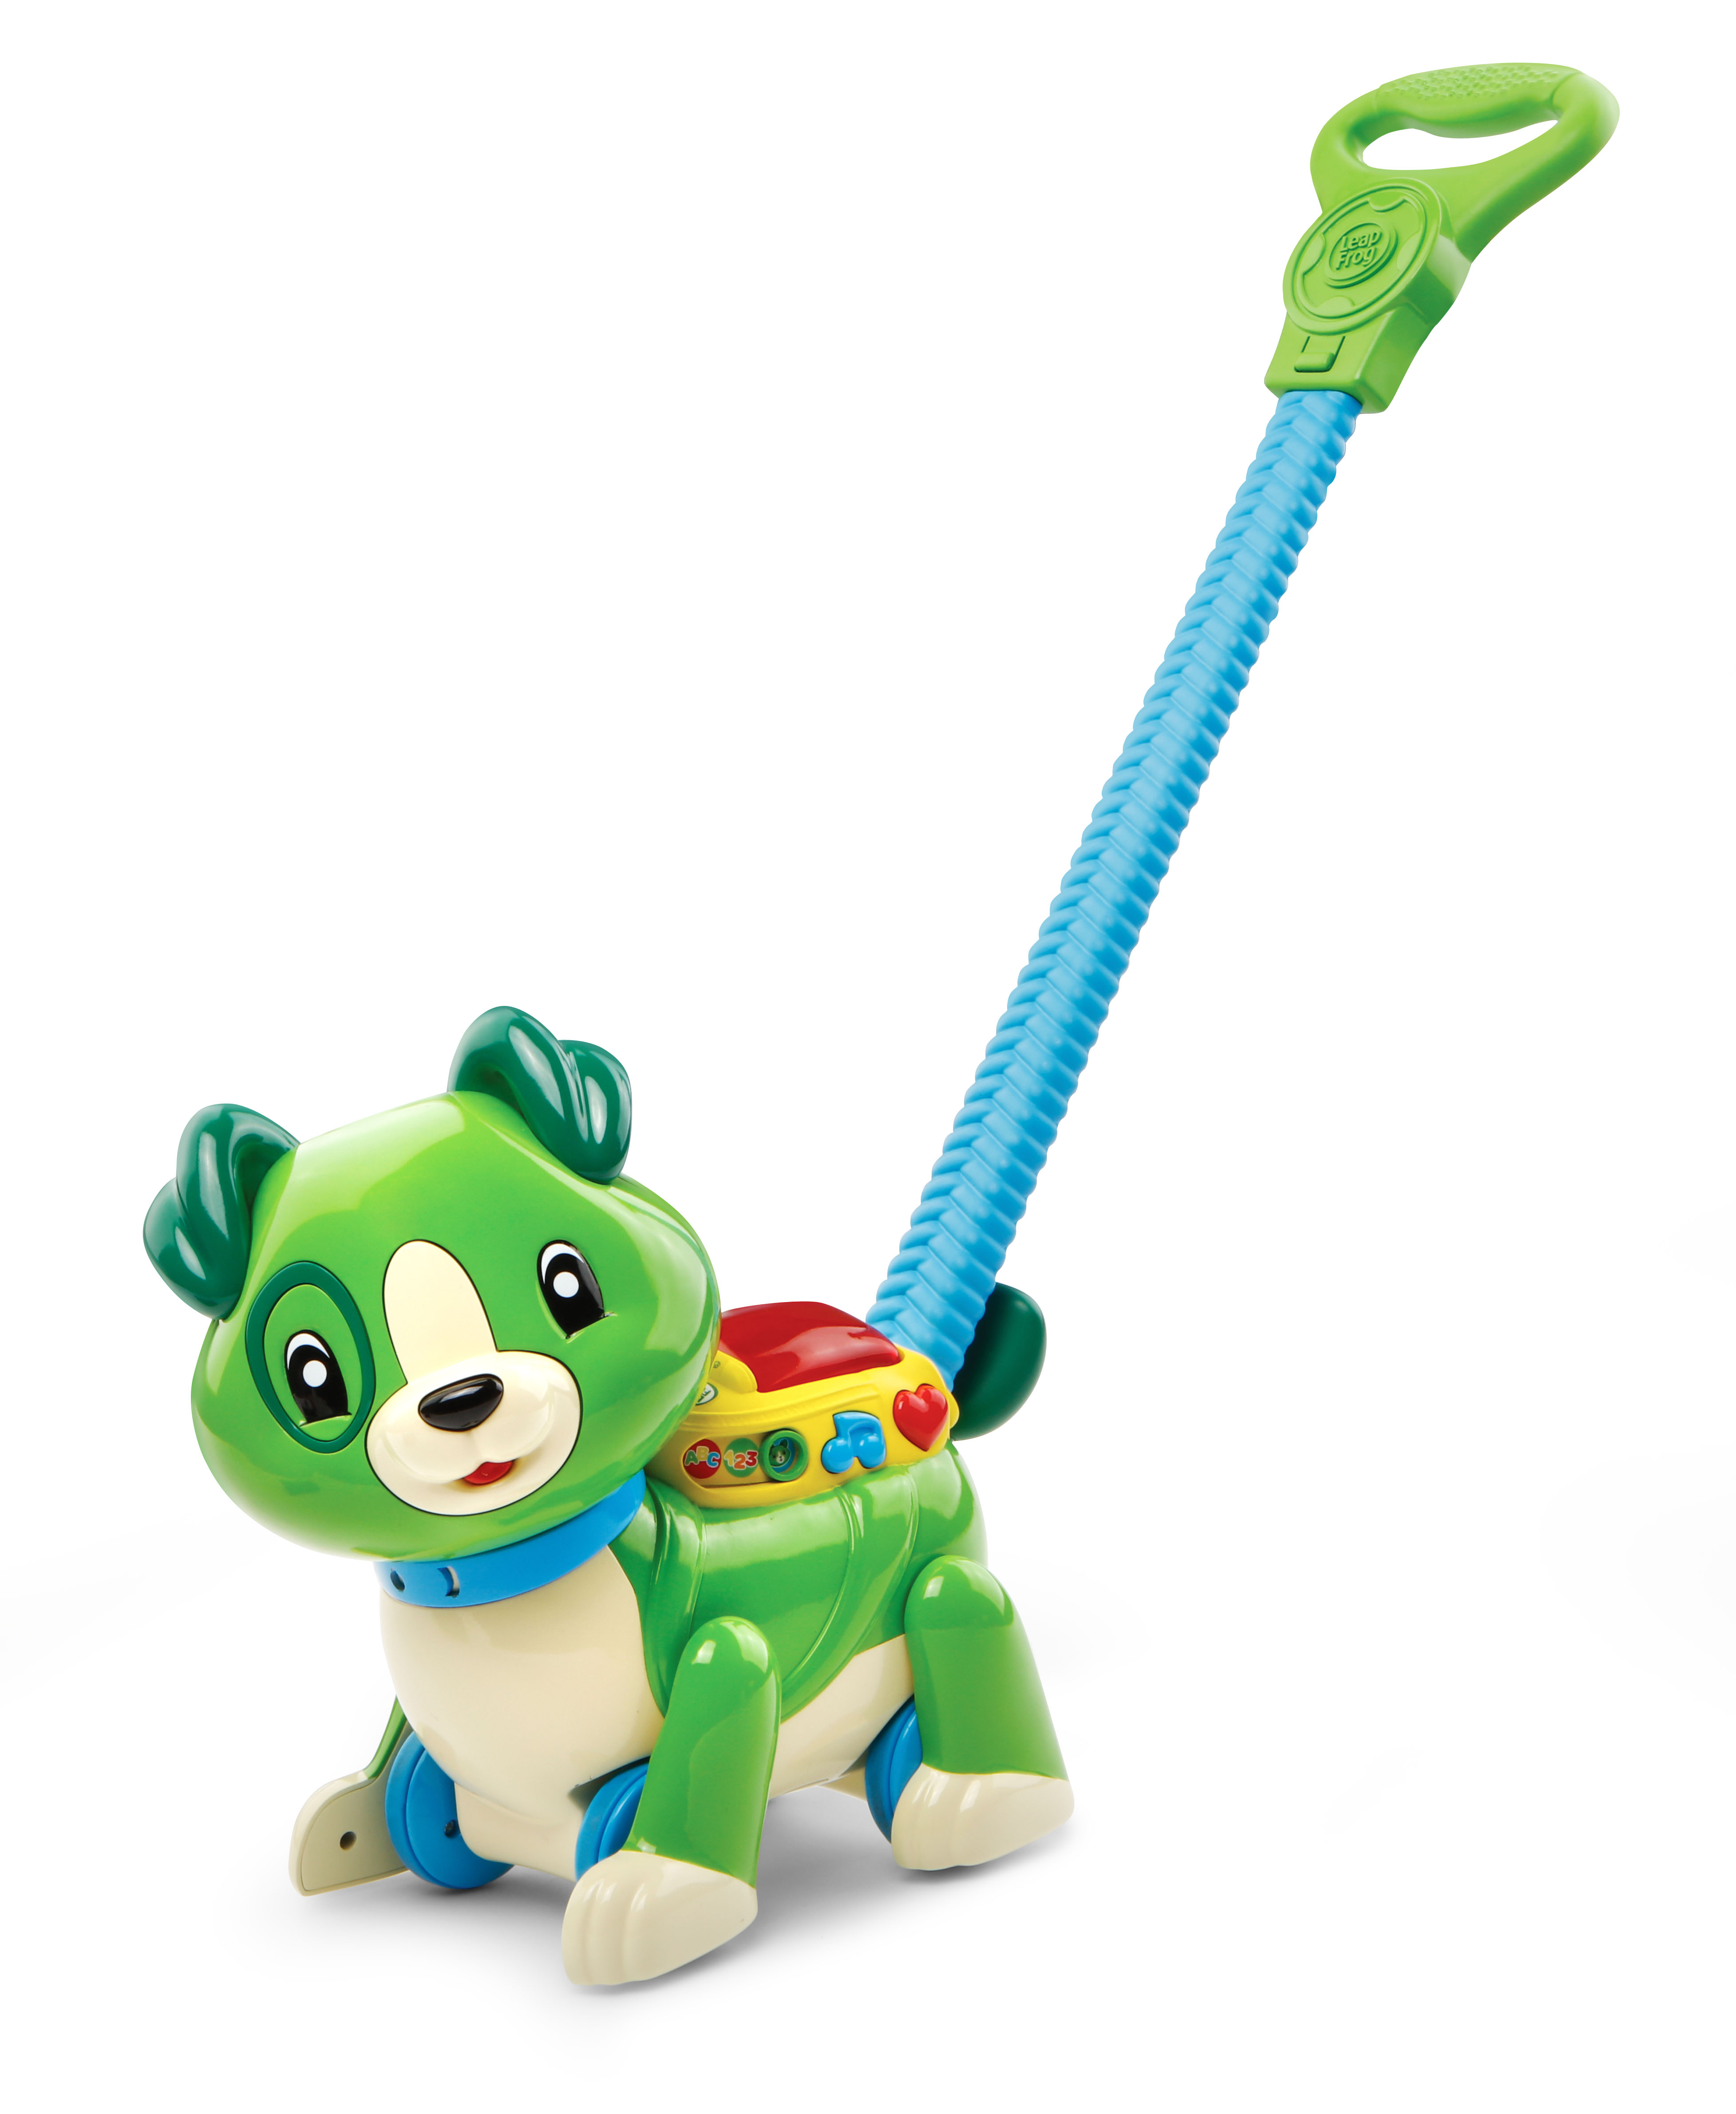 LeapFrog Step & Learn Scout_original